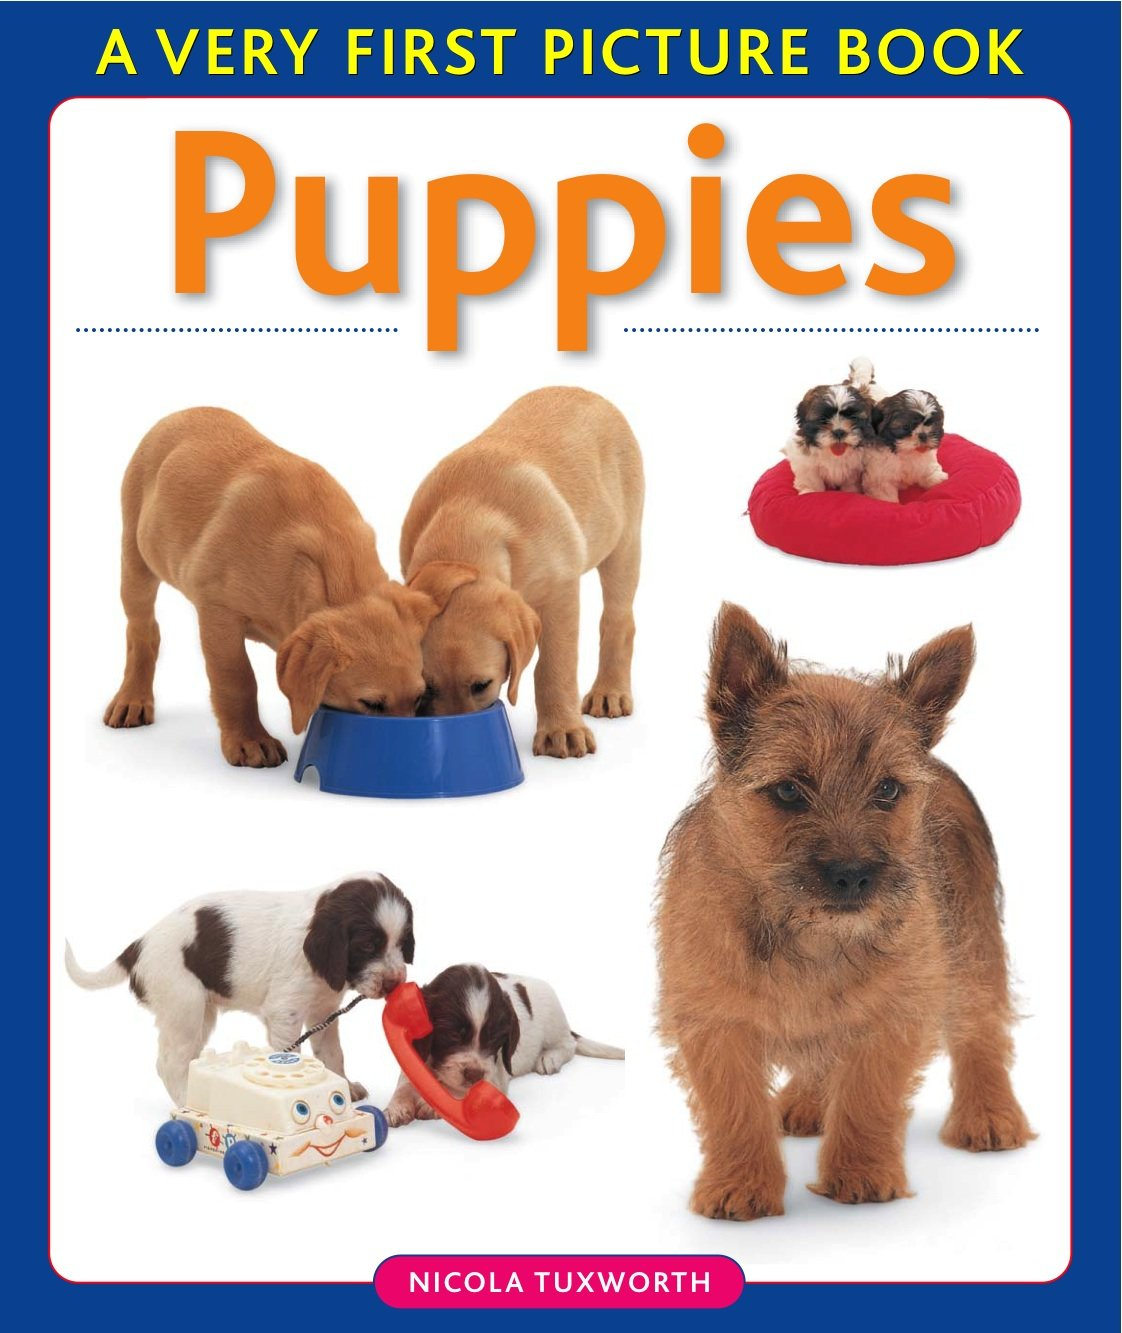 Puppies (Very First Picture Book) ebook